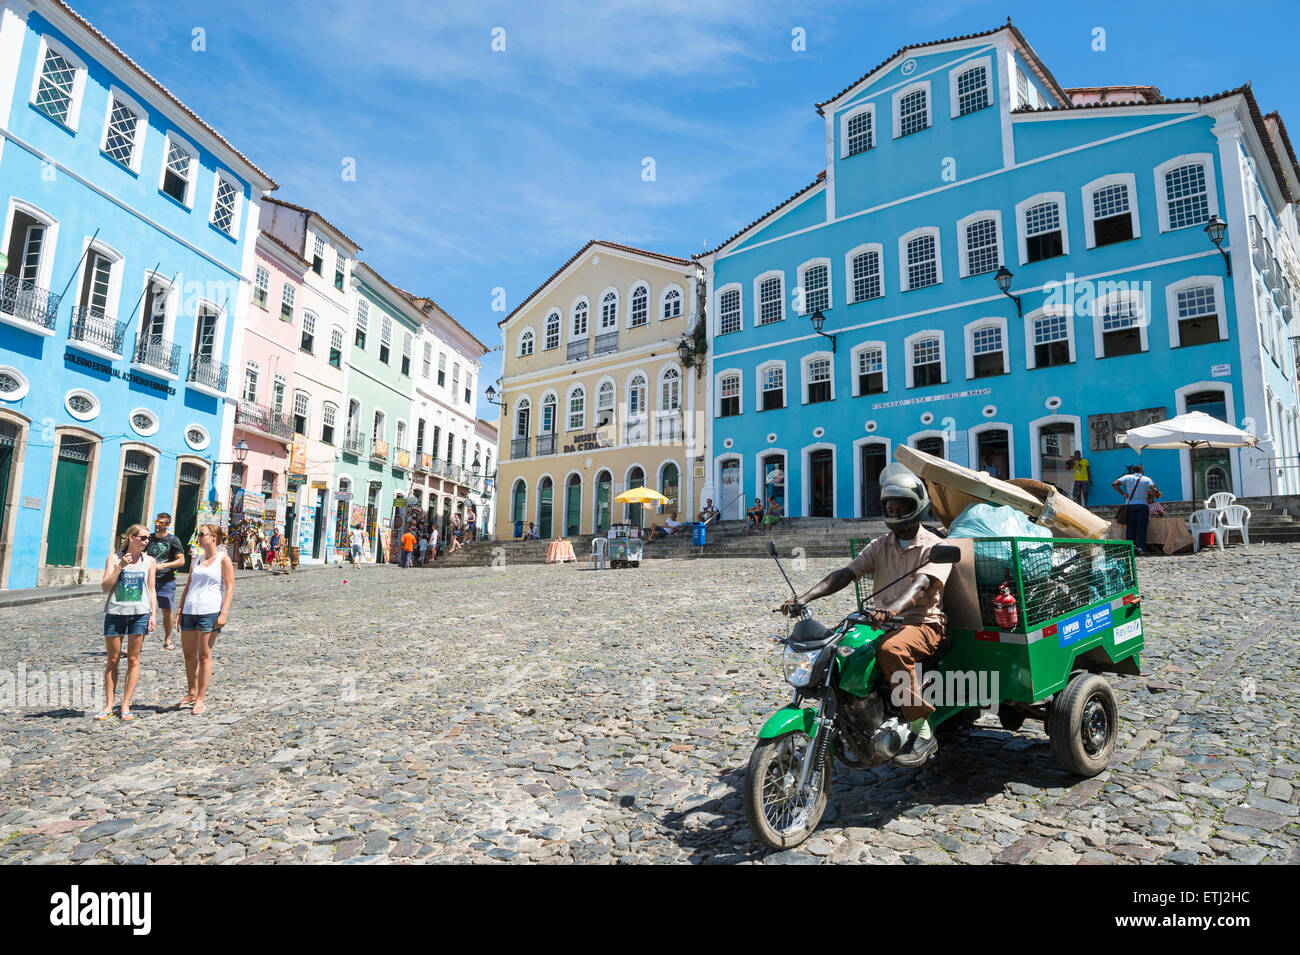 SALVADOR, BRAZIL - MARCH 12, 2015: Motorcart pulling garbage drives along the cobblestone hill in Pelourinho. - Stock Image